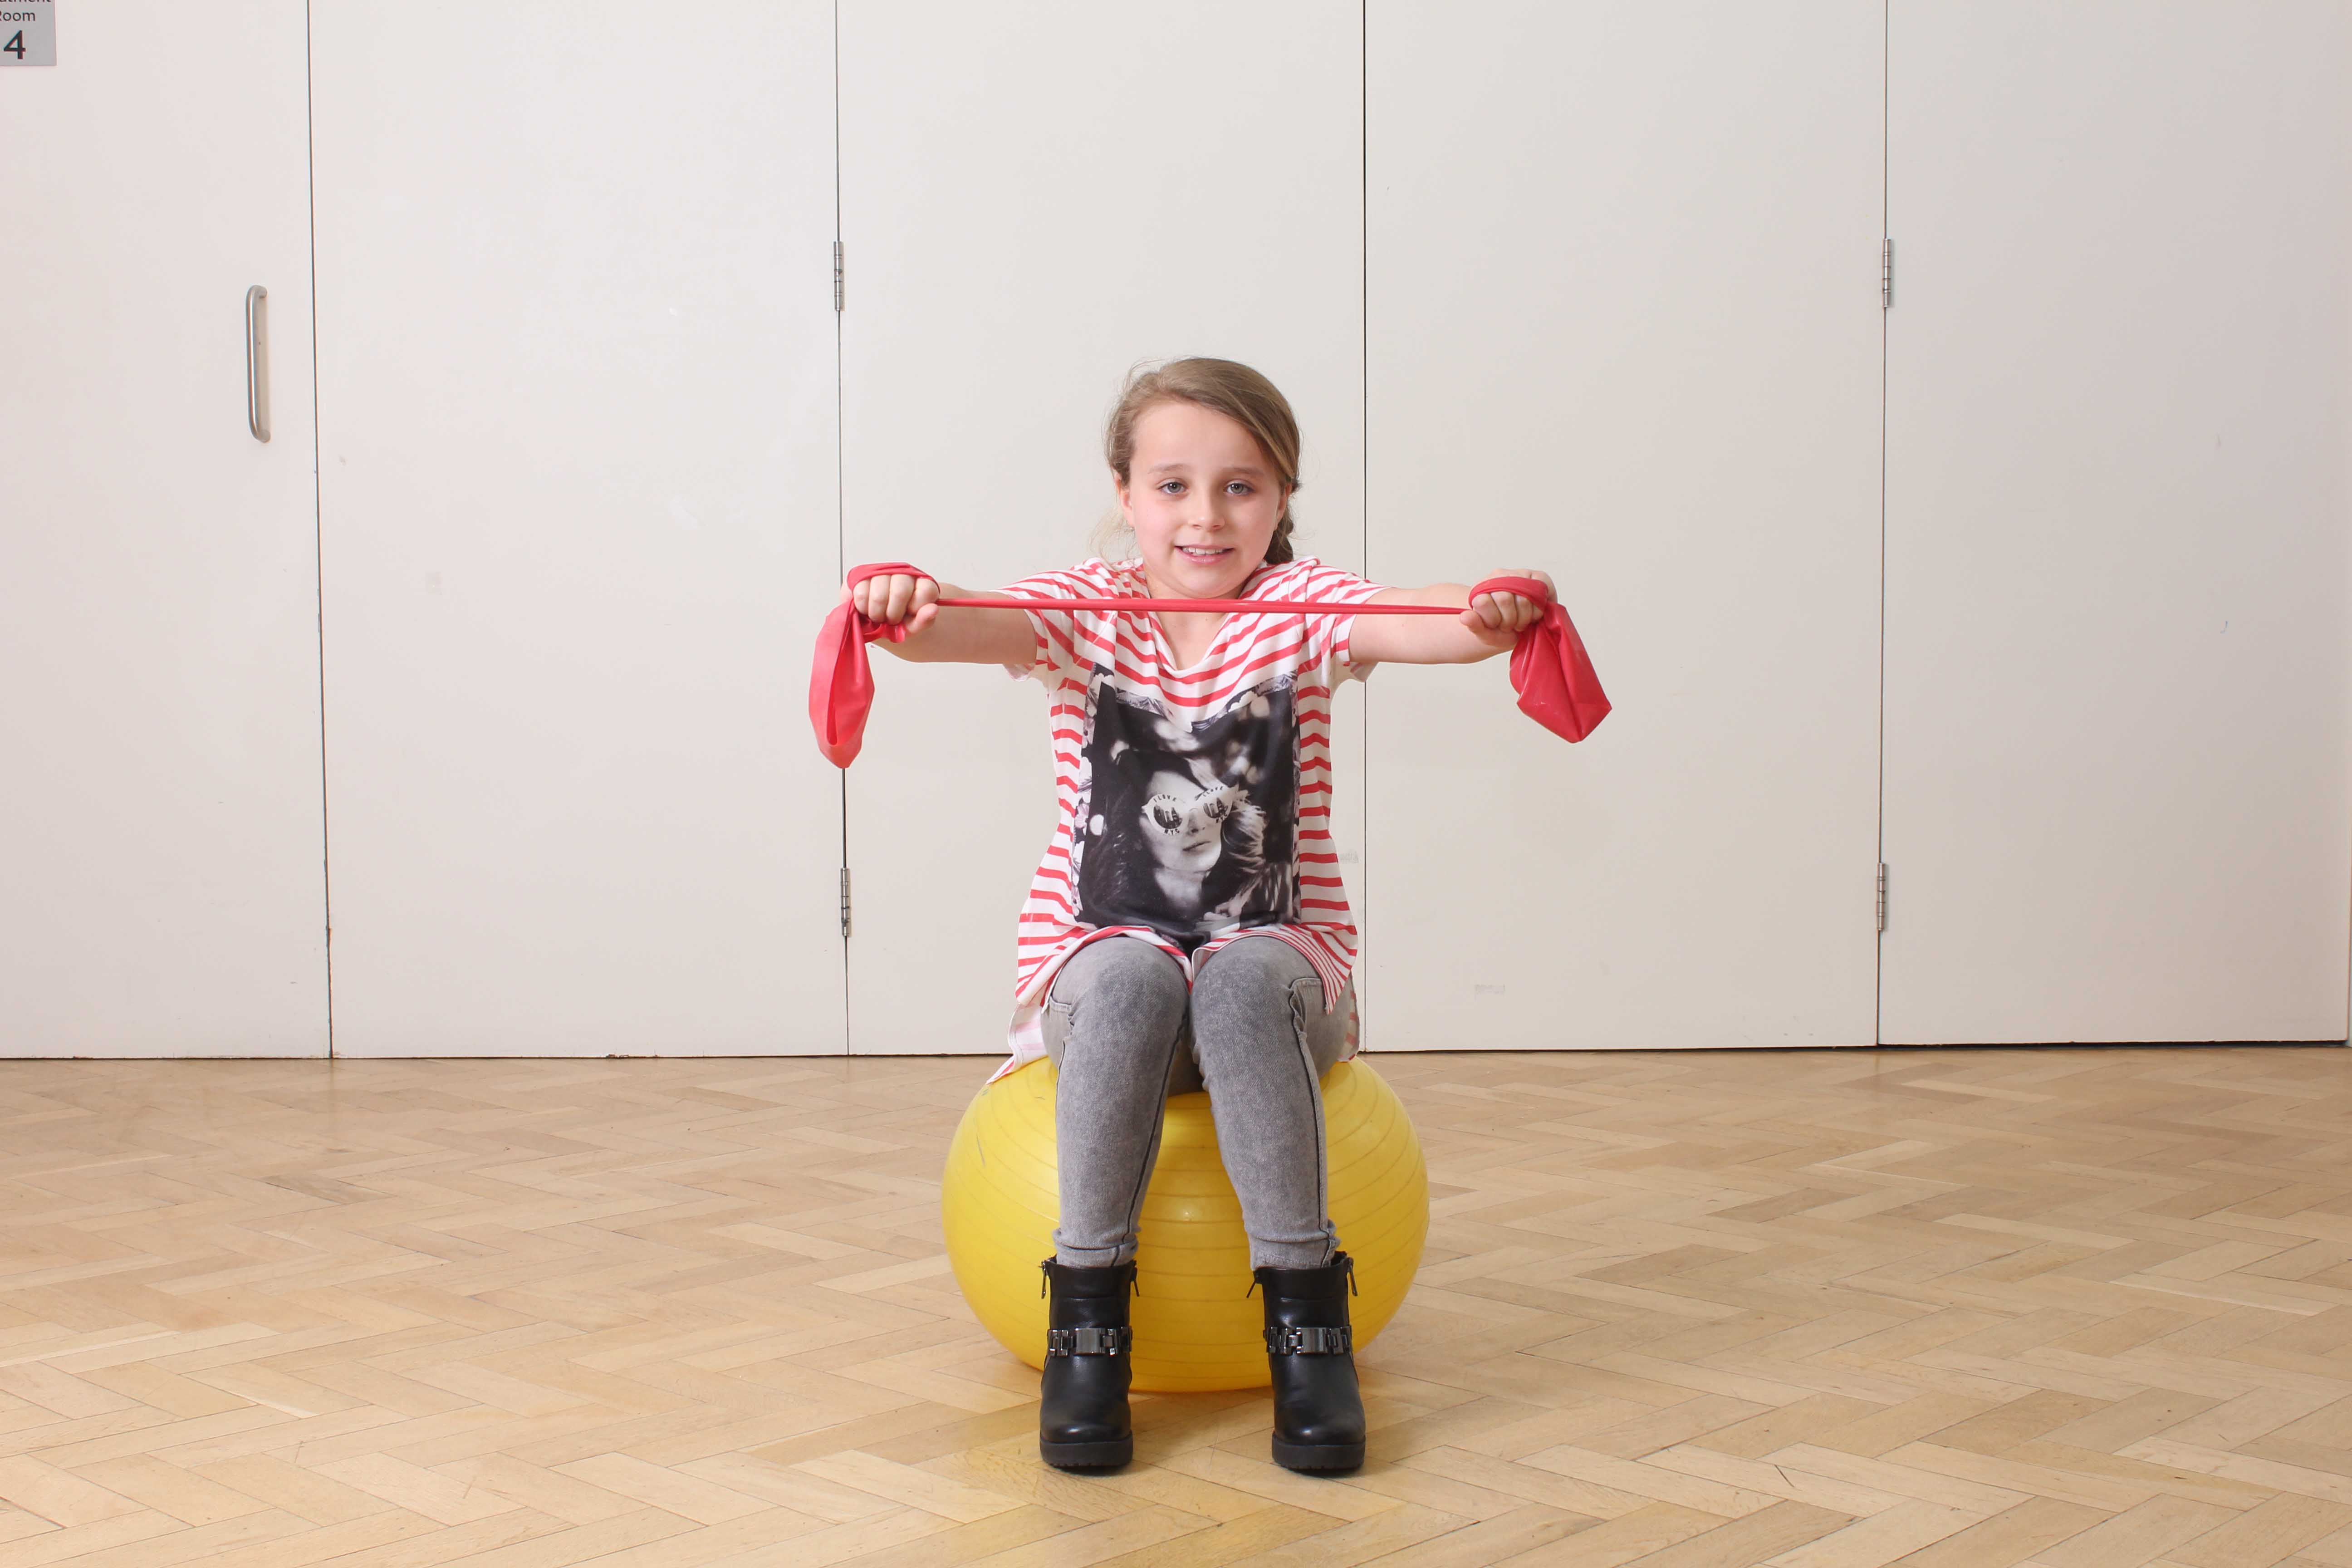 Encouraging strengtheing through play